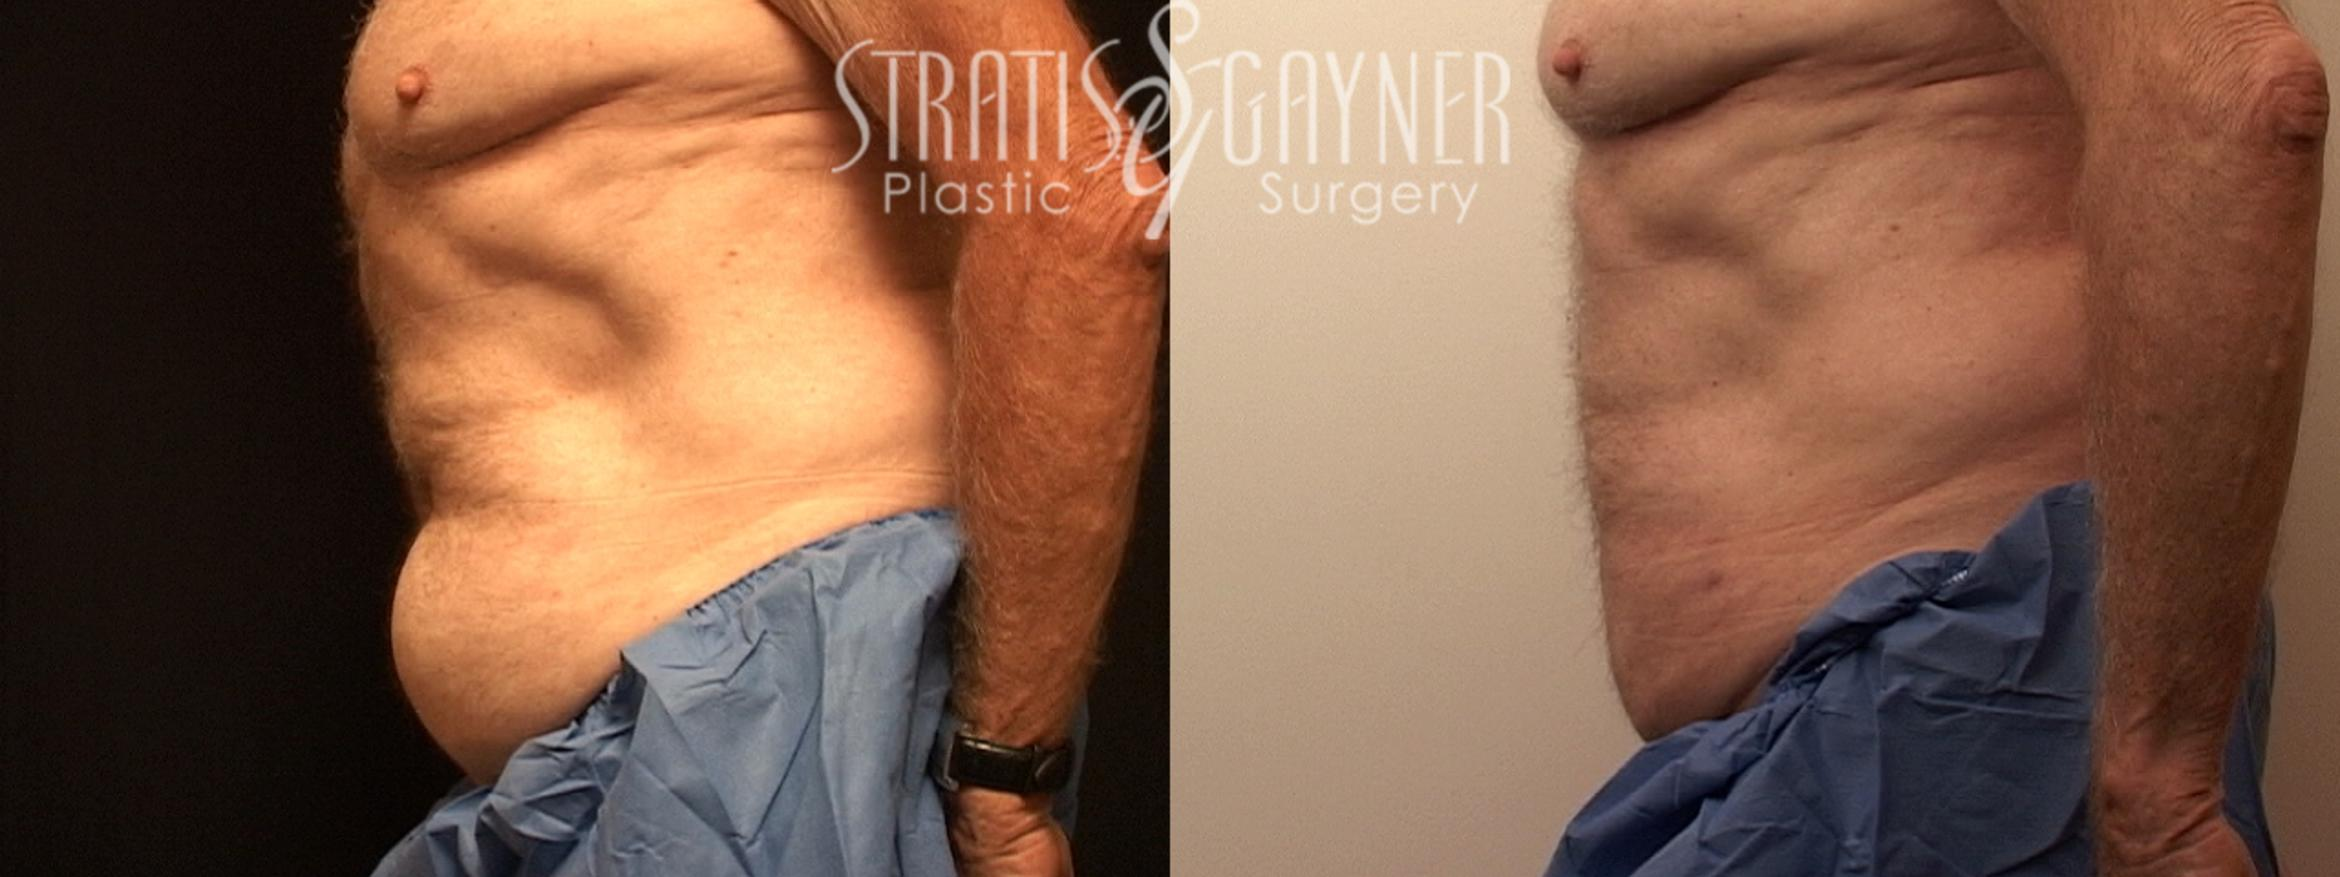 Liposuction Case 127 Before & After View #3 | Harrisburg, PA | Stratis Gayner Plastic Surgery